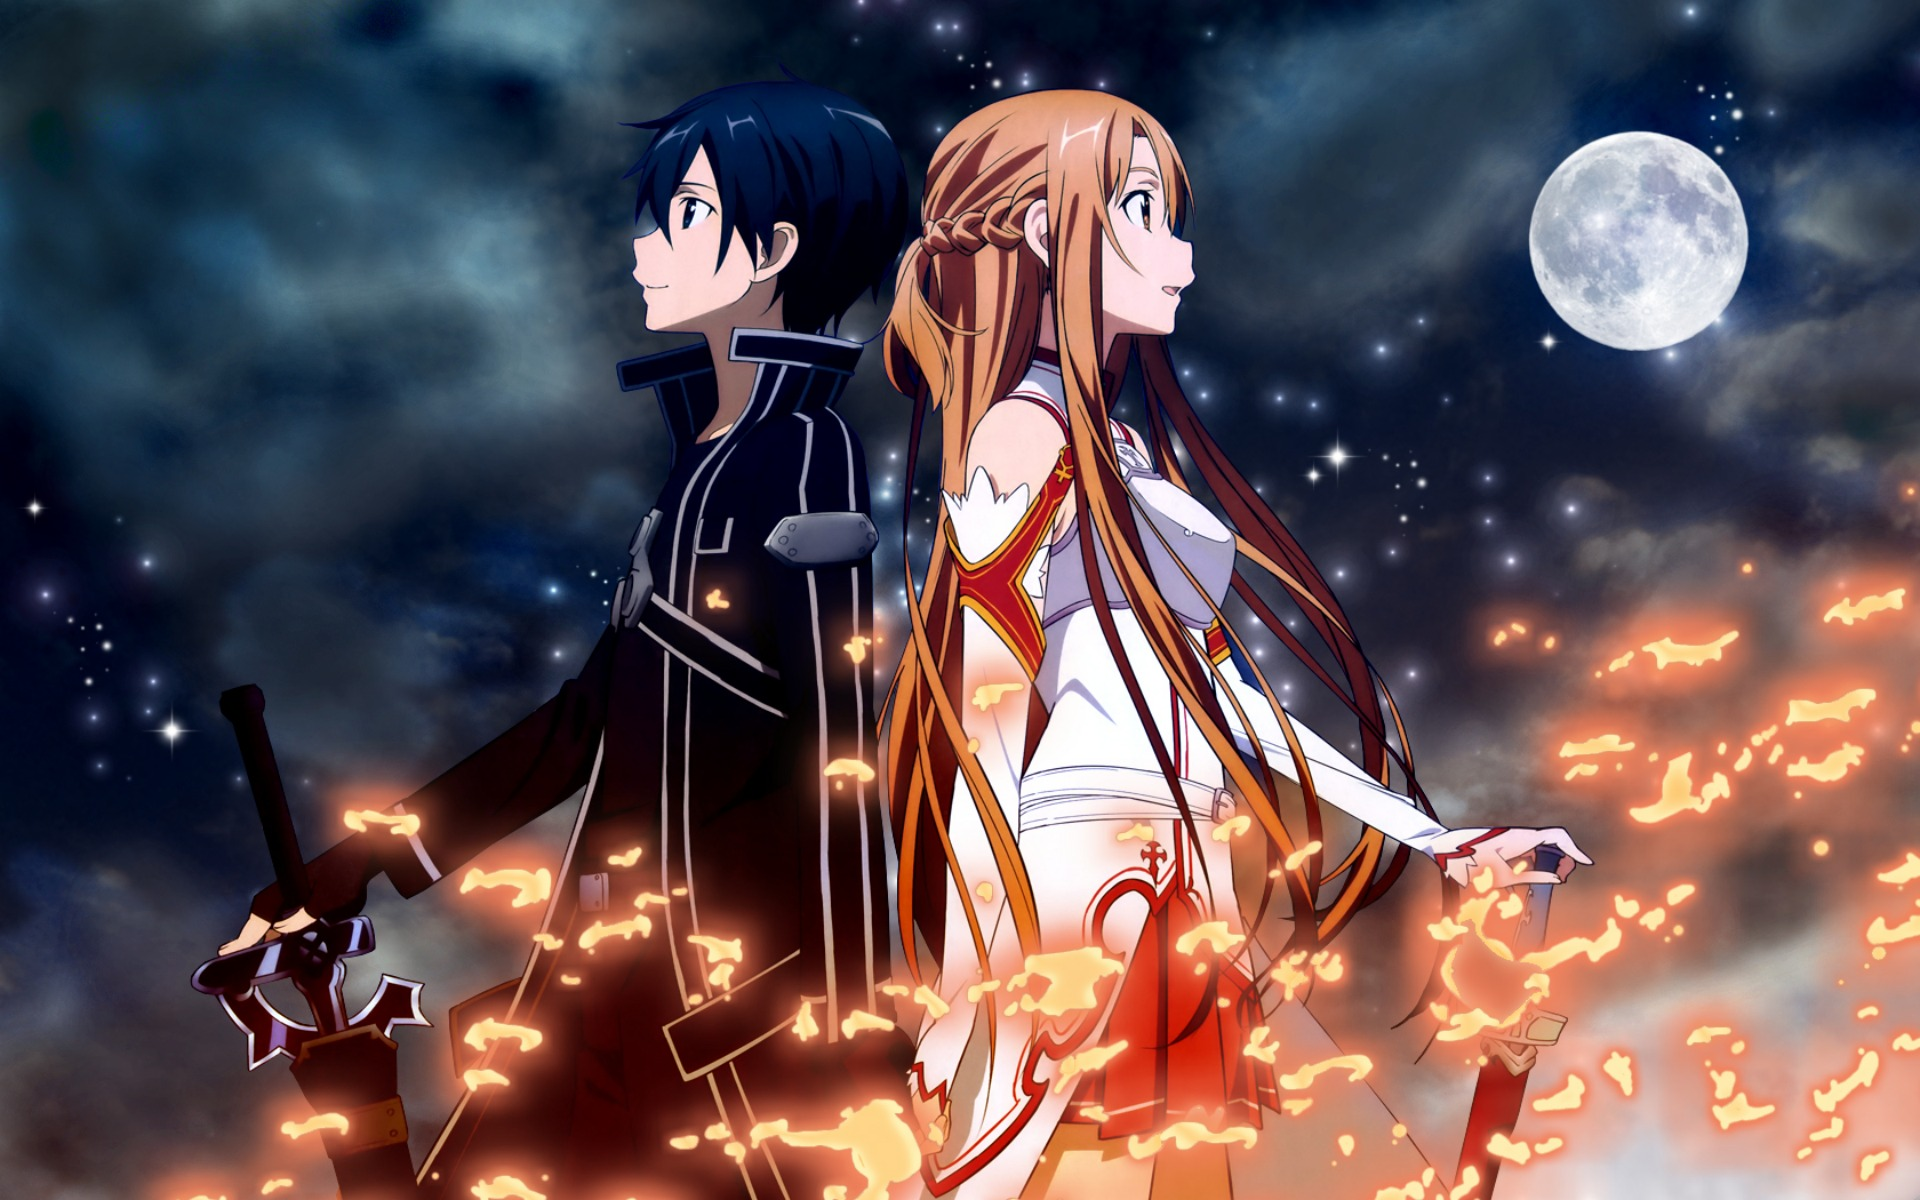 Free Download Sword Art Online Images Sao Hd Wallpaper And